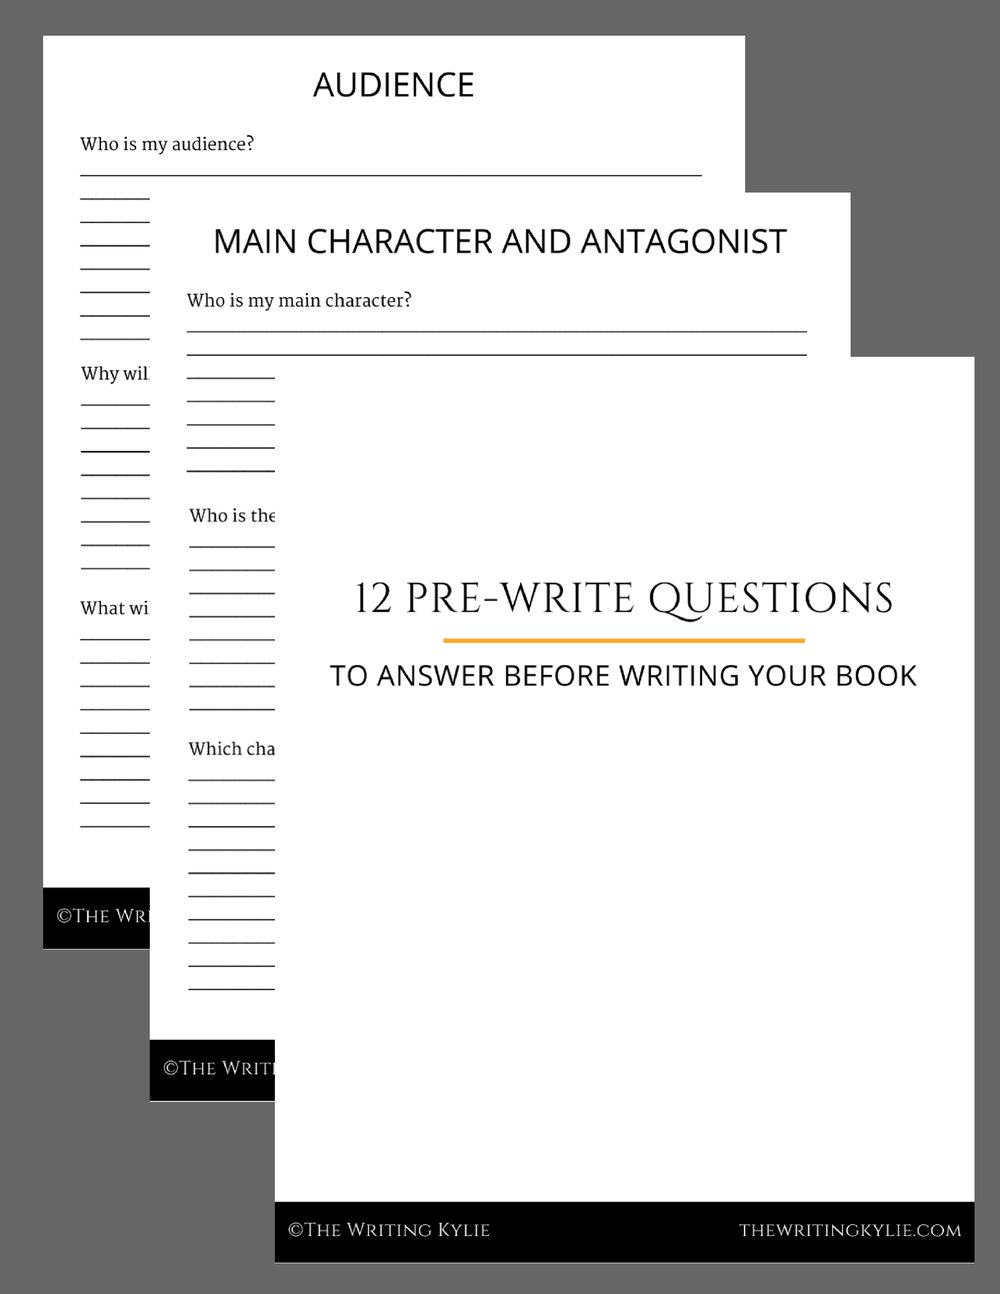 12 Pre-Write Questions to Answer Before Writing your Book.jpg